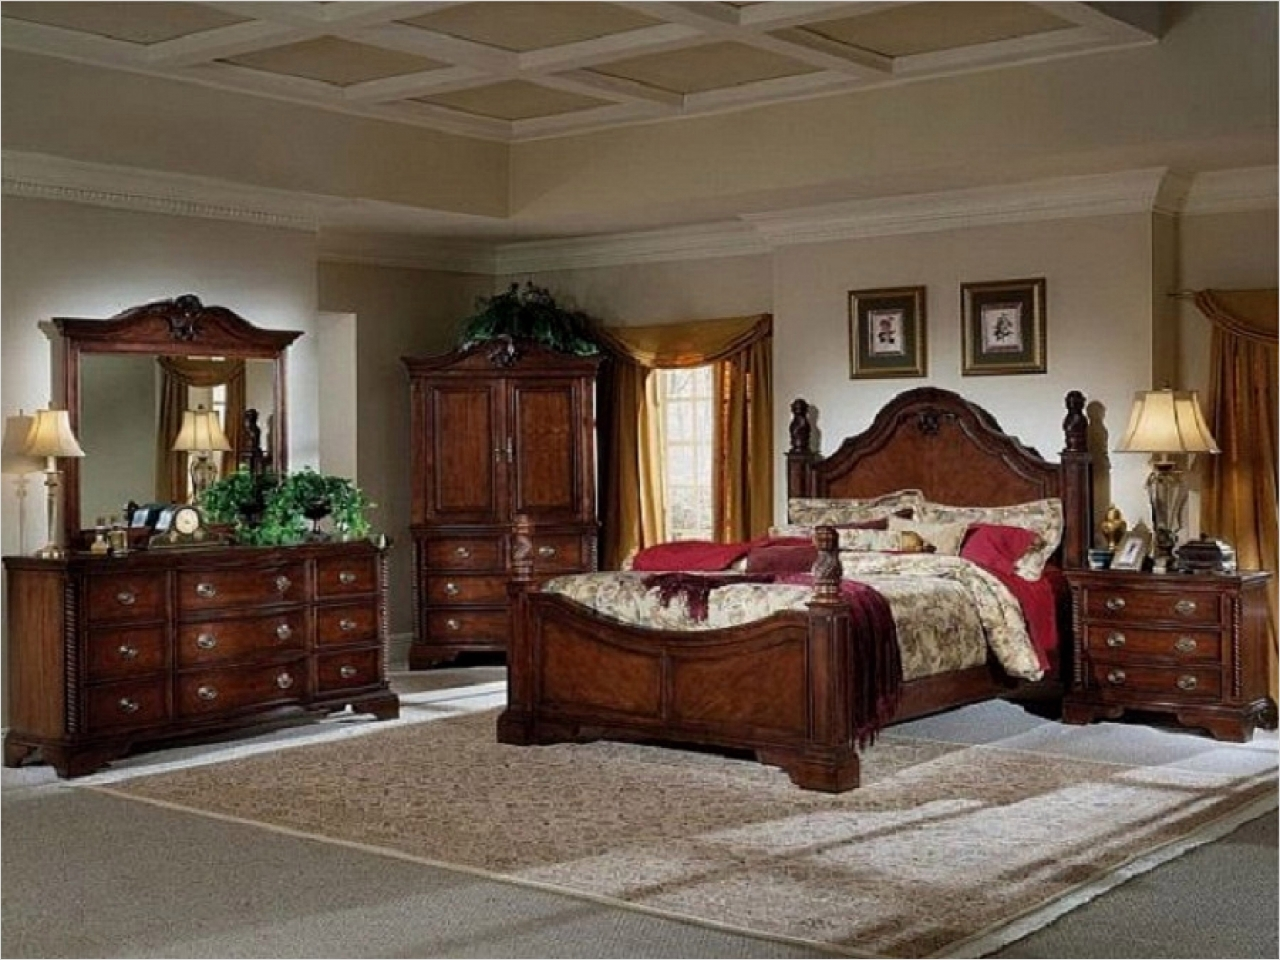 43 Stunning Small Bedroom Decorating Ideas On A Budget 98 Bedroom Decor Country Beautiful Country Bedroom Ideas On A Bud Image Of Master Small Bedroom 5